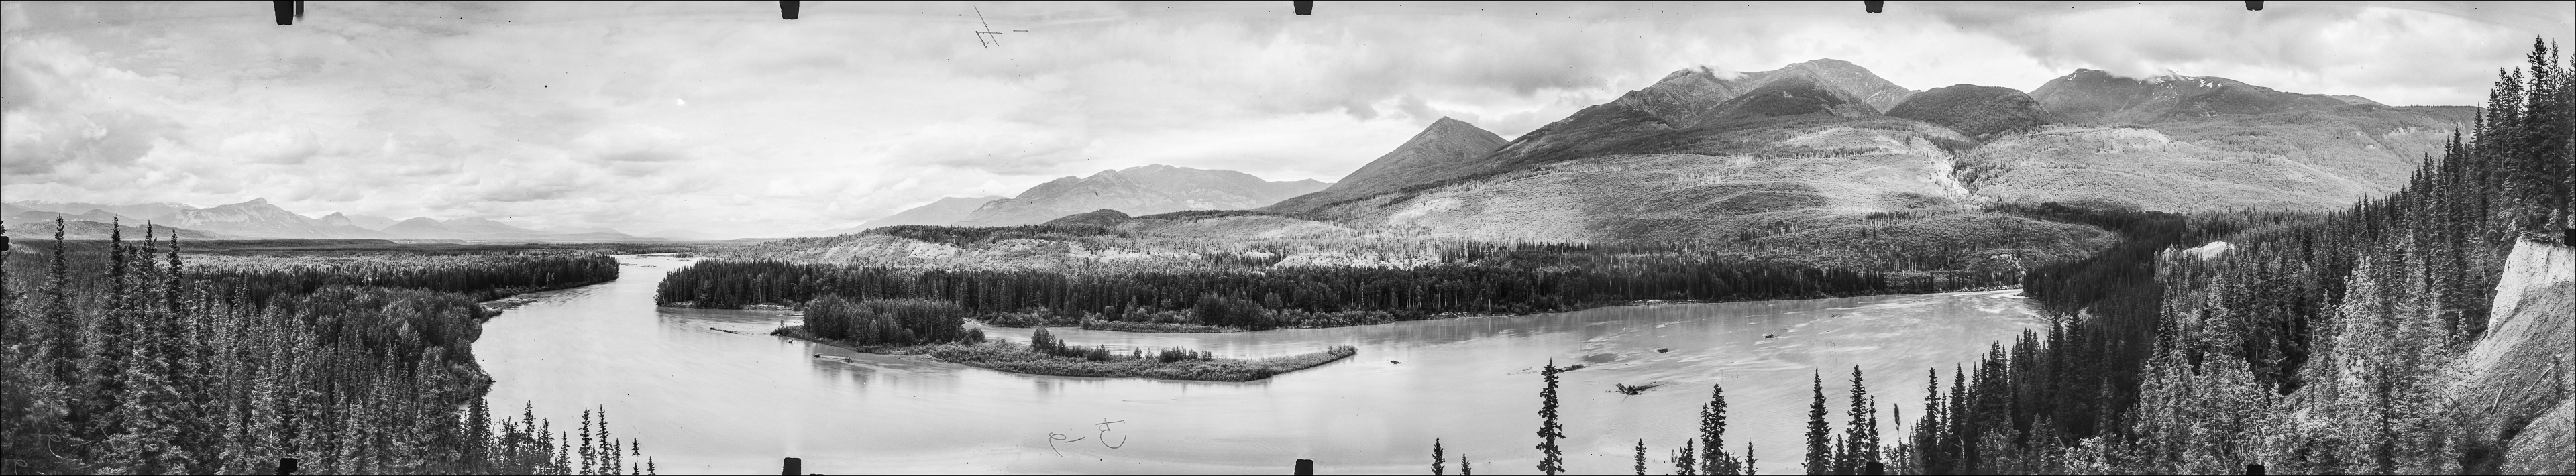 Panorama looking north from Station Cokely Post: A. J. Campbell, 1939